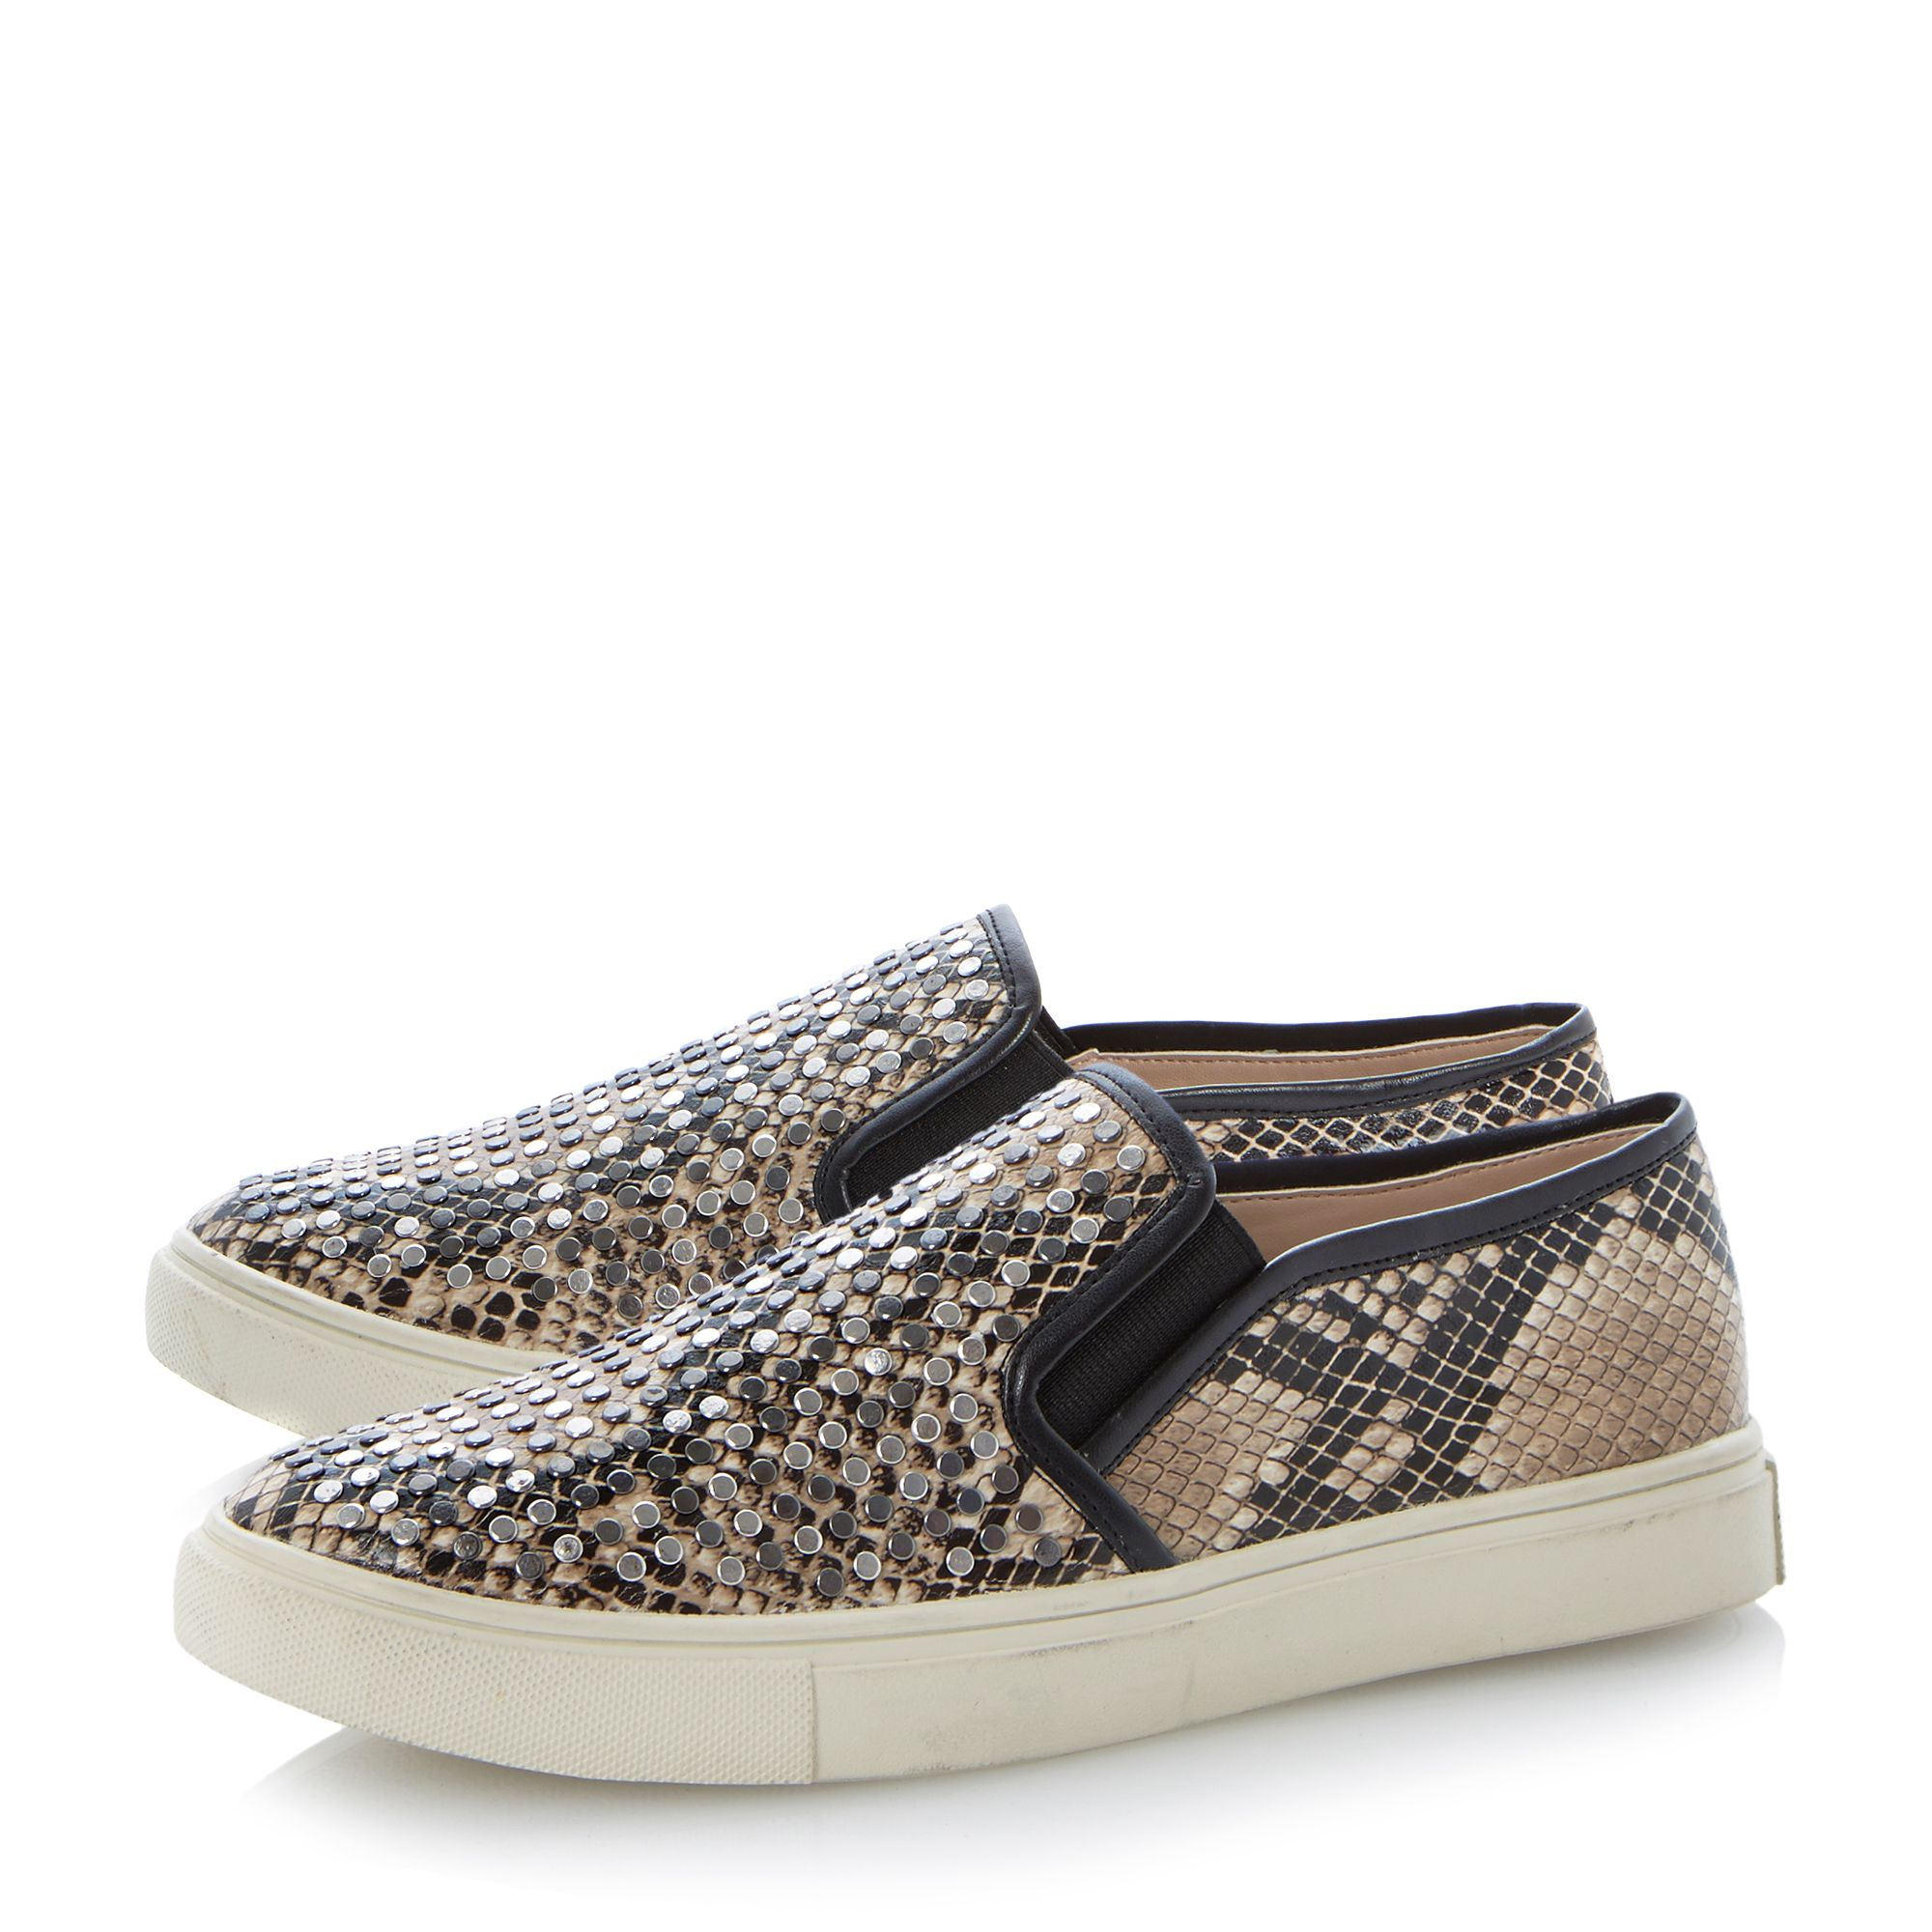 Eros sm slip on fashion sneakers